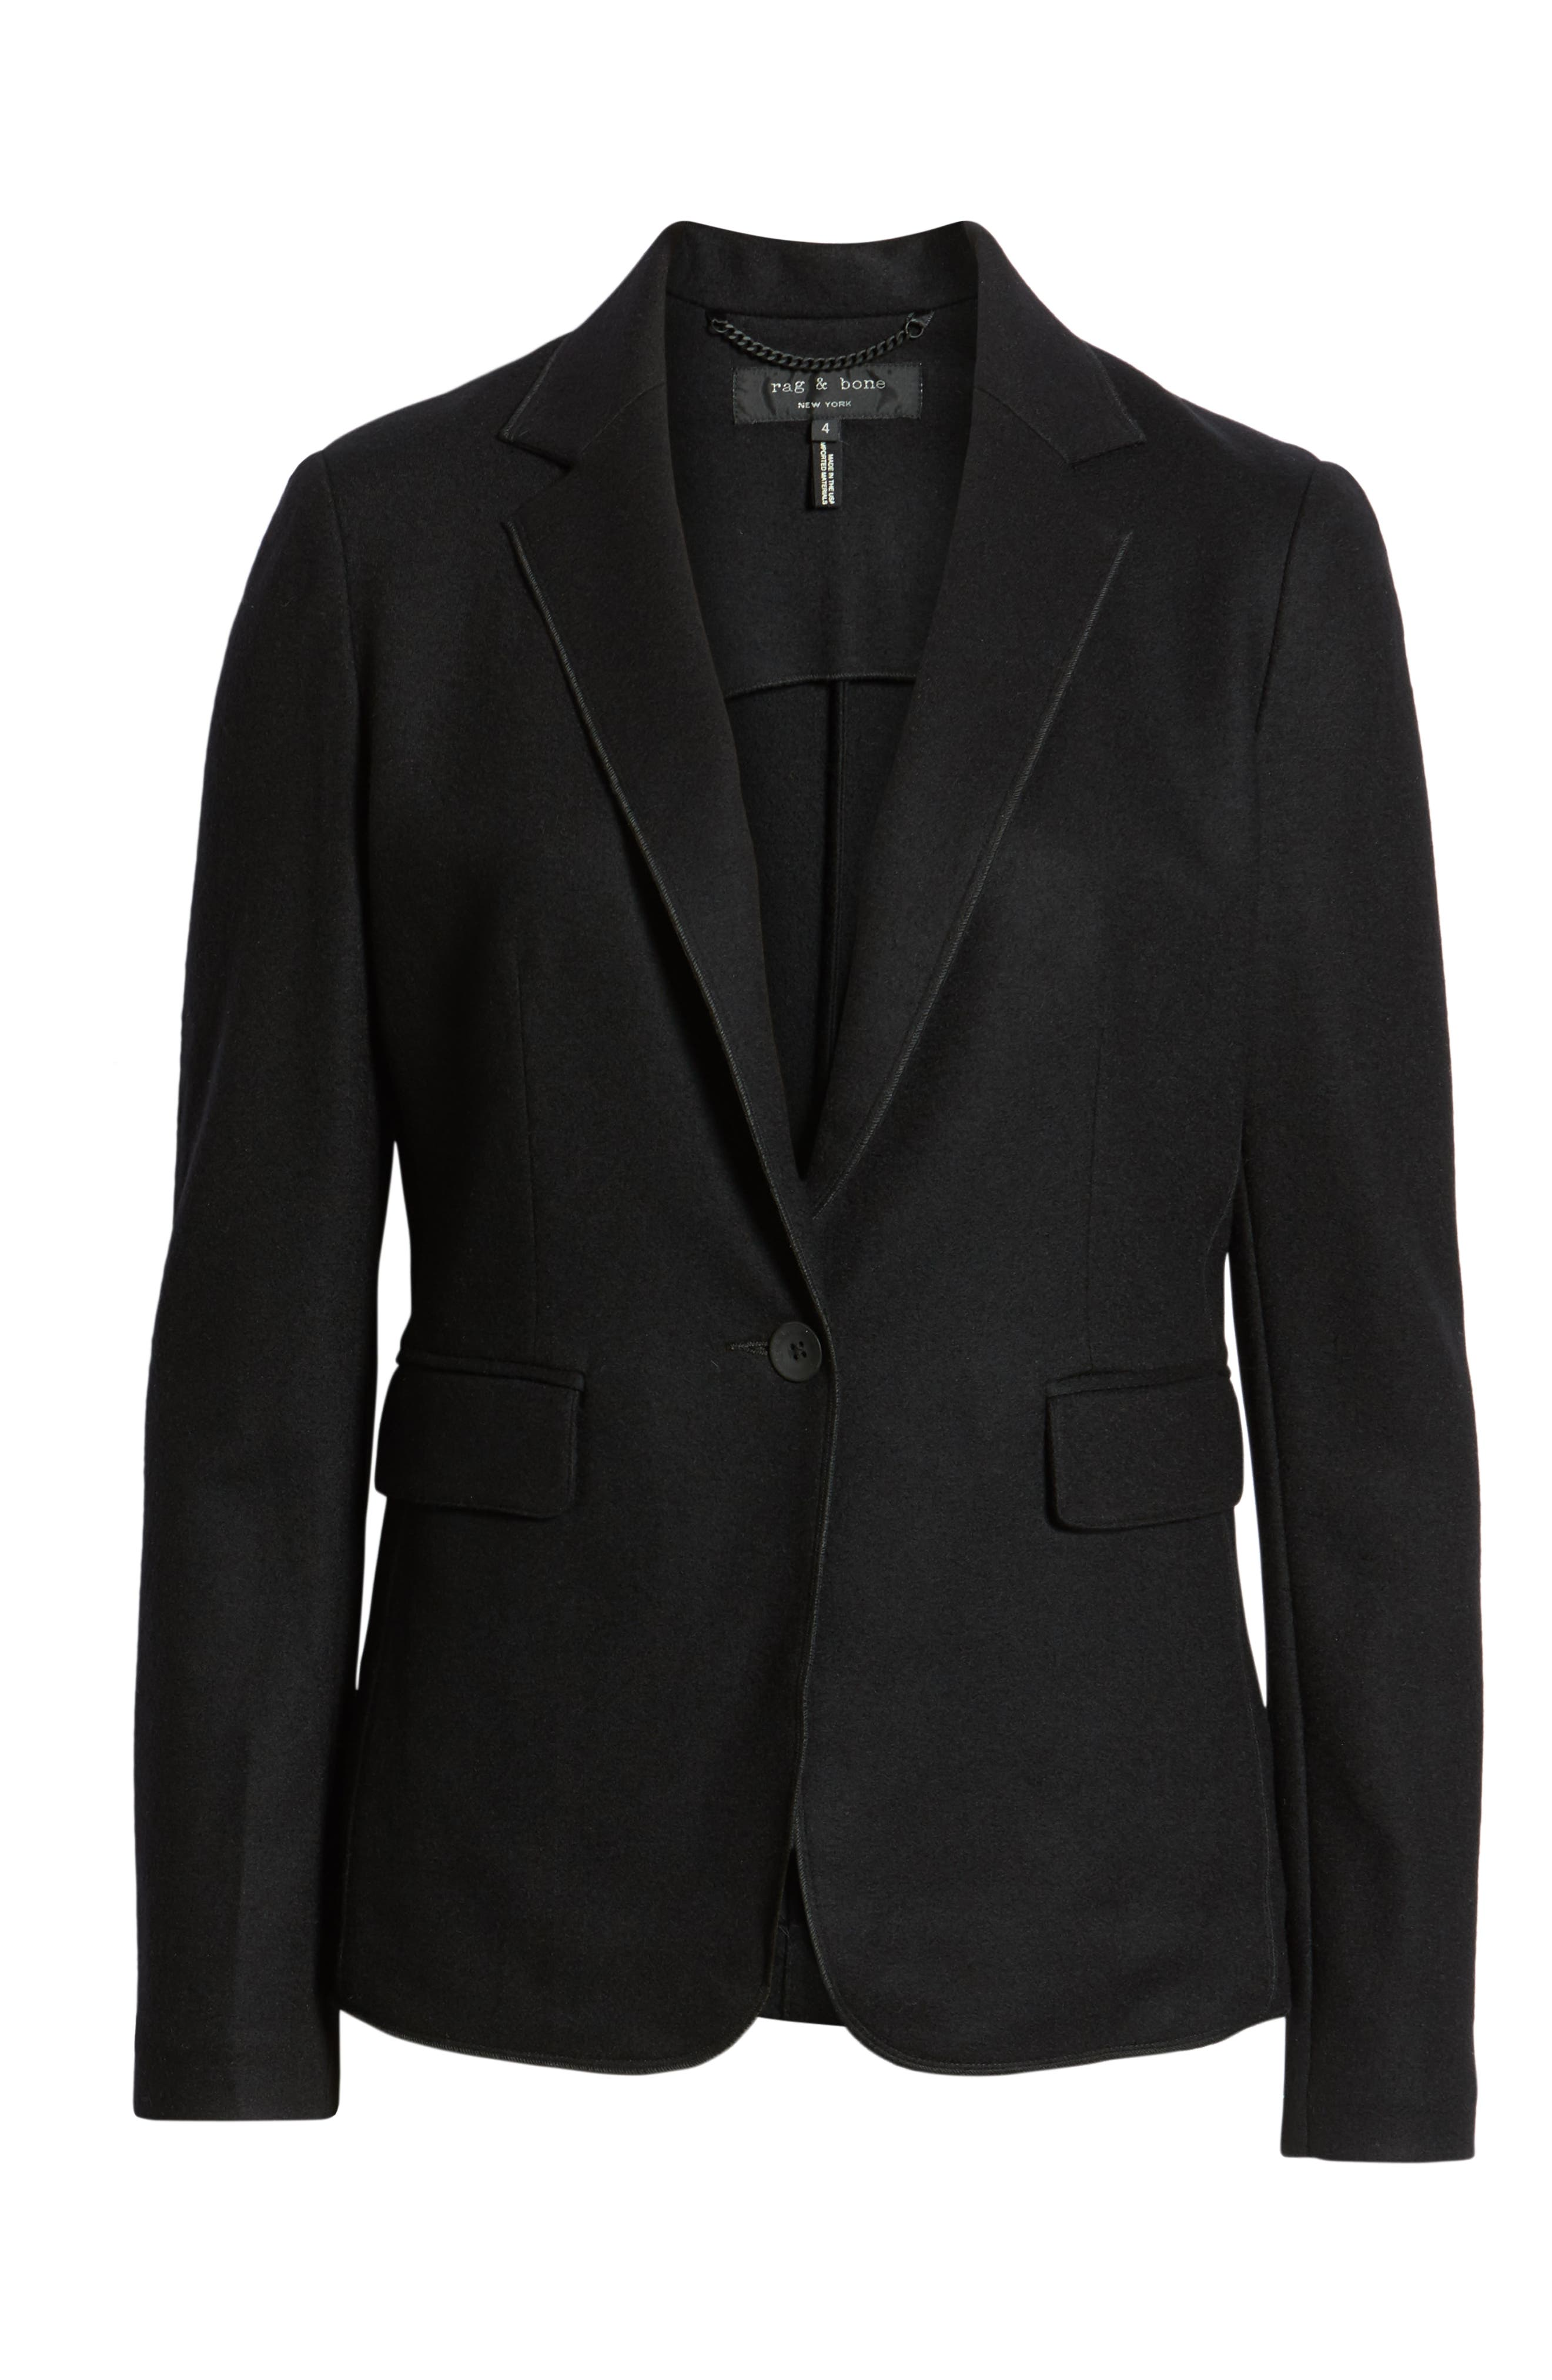 RAG & BONE, Club Wool Blazer, Alternate thumbnail 2, color, BLACK